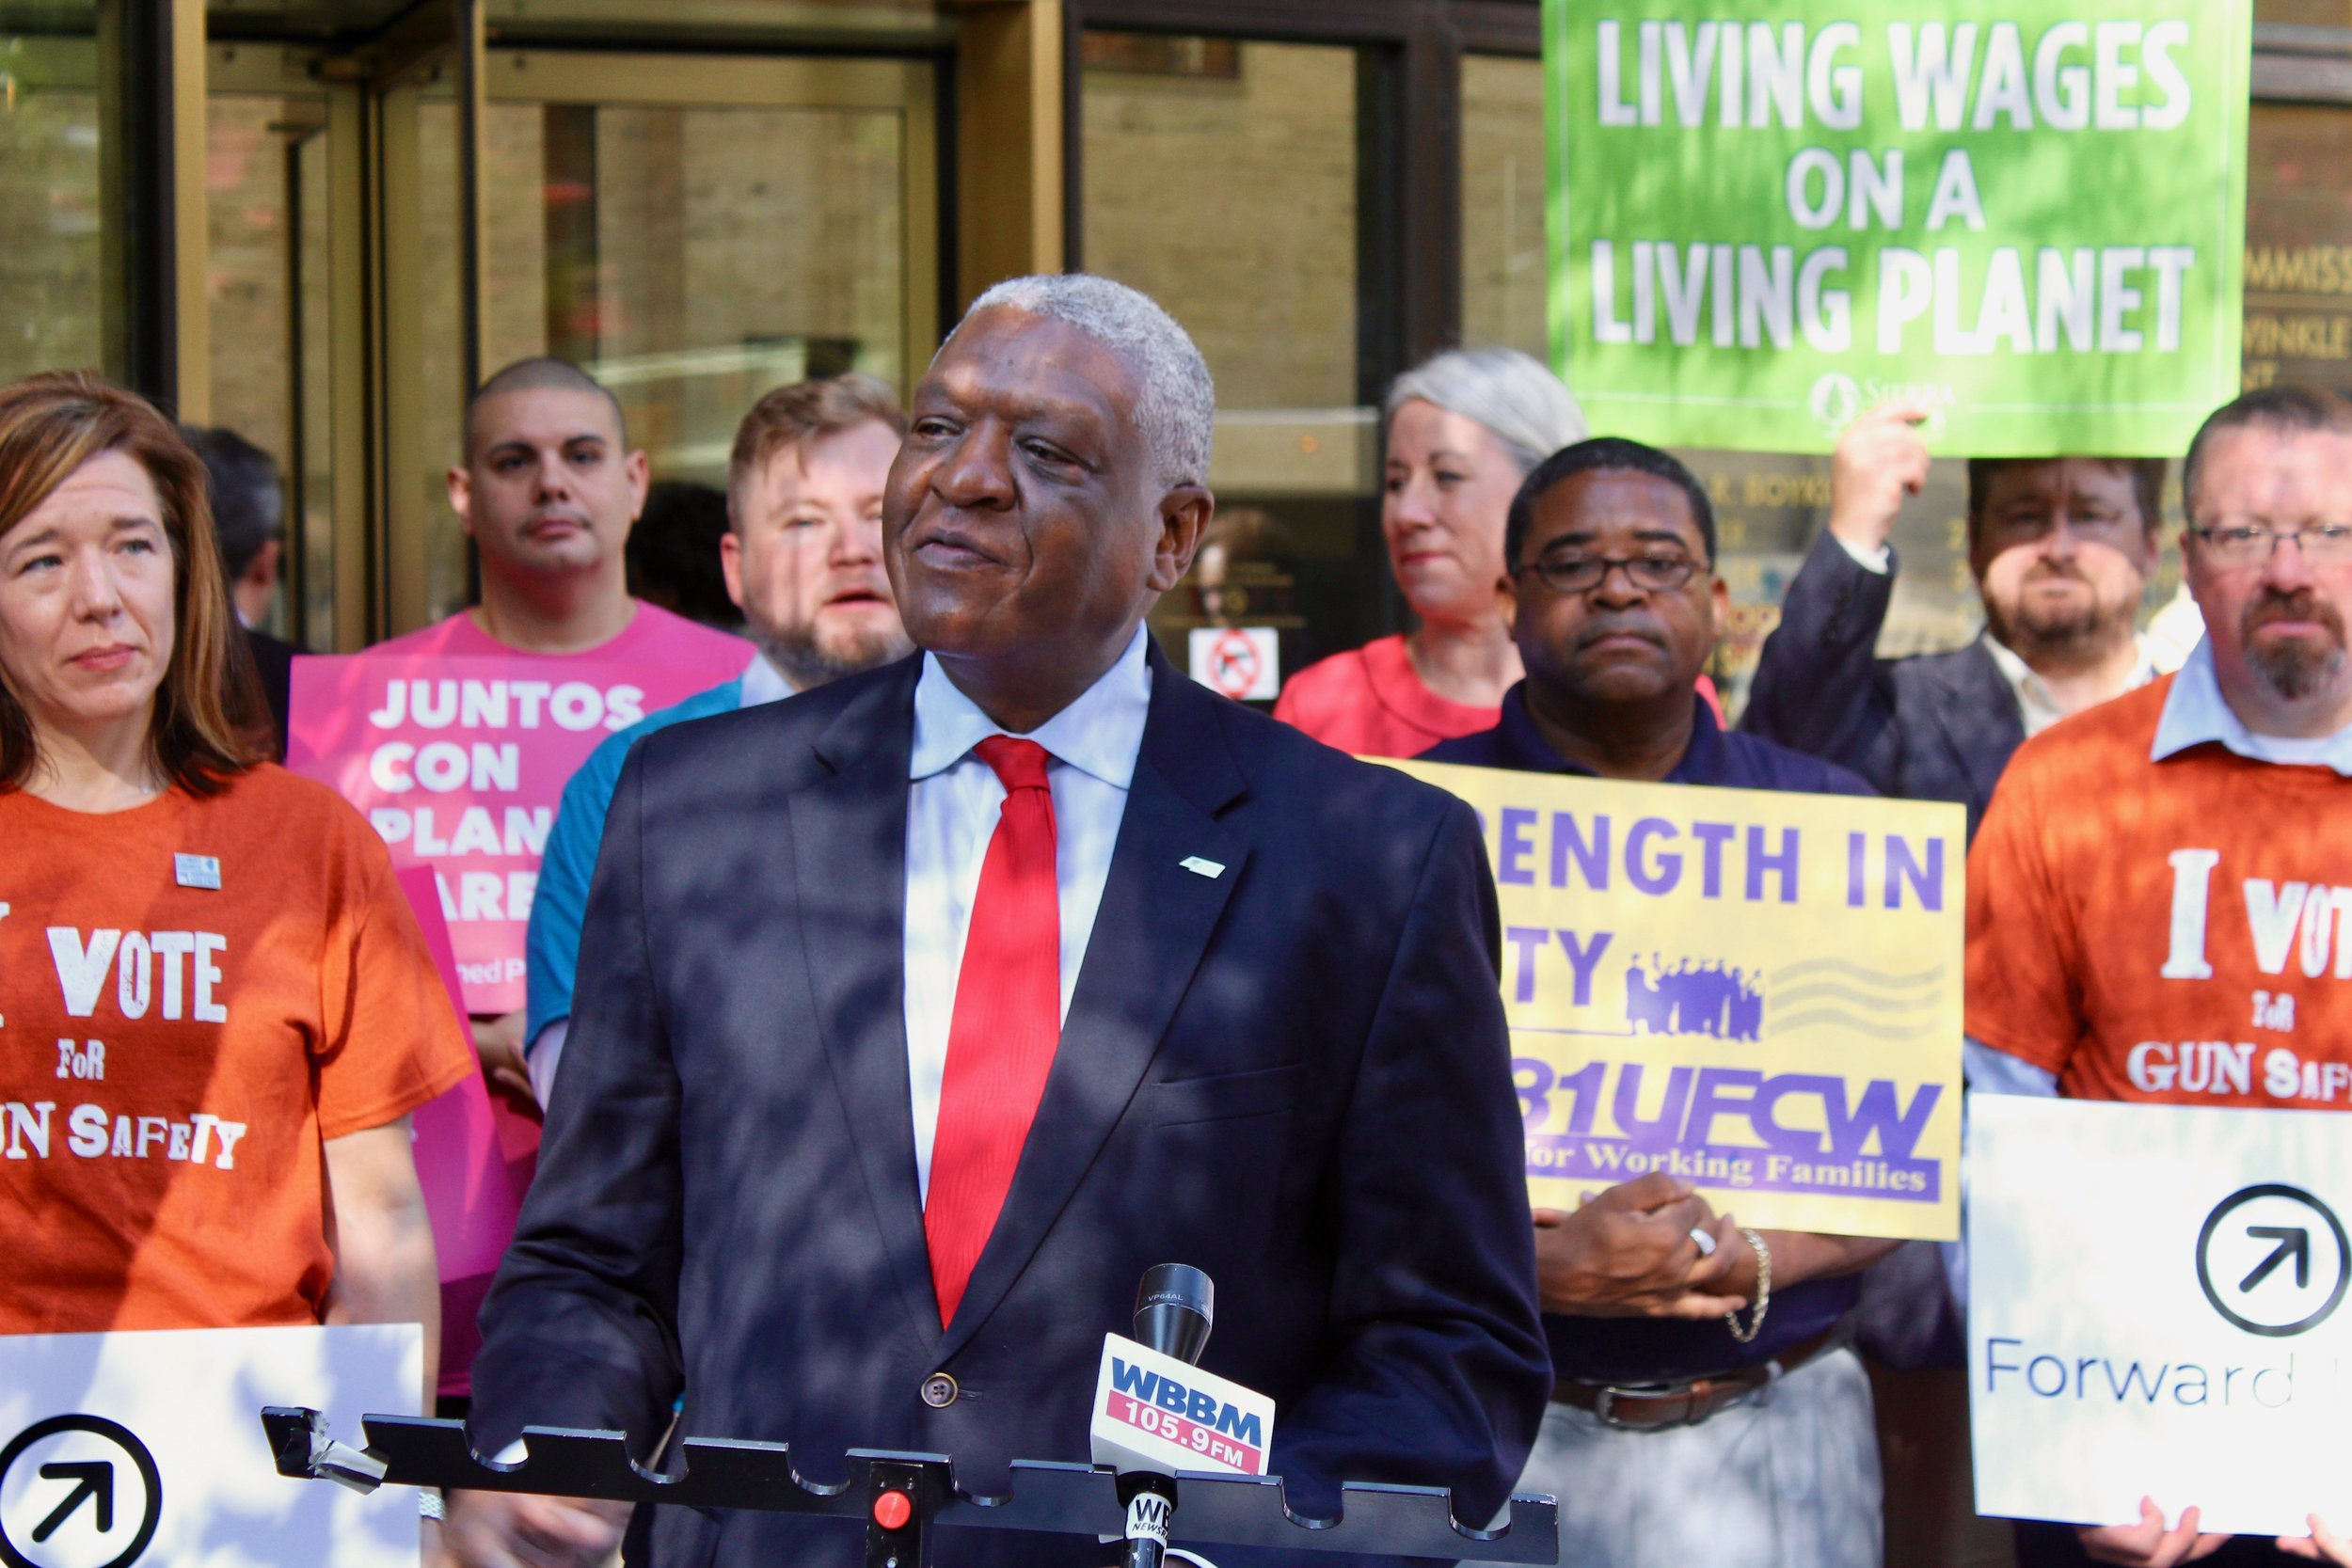 William McNary, co-director of Citizen Action Illinois, joins in touting the Forward Illinois agenda Tuesday outside the Dunne Building in Chicago. (One Illinois/Ted Cox)